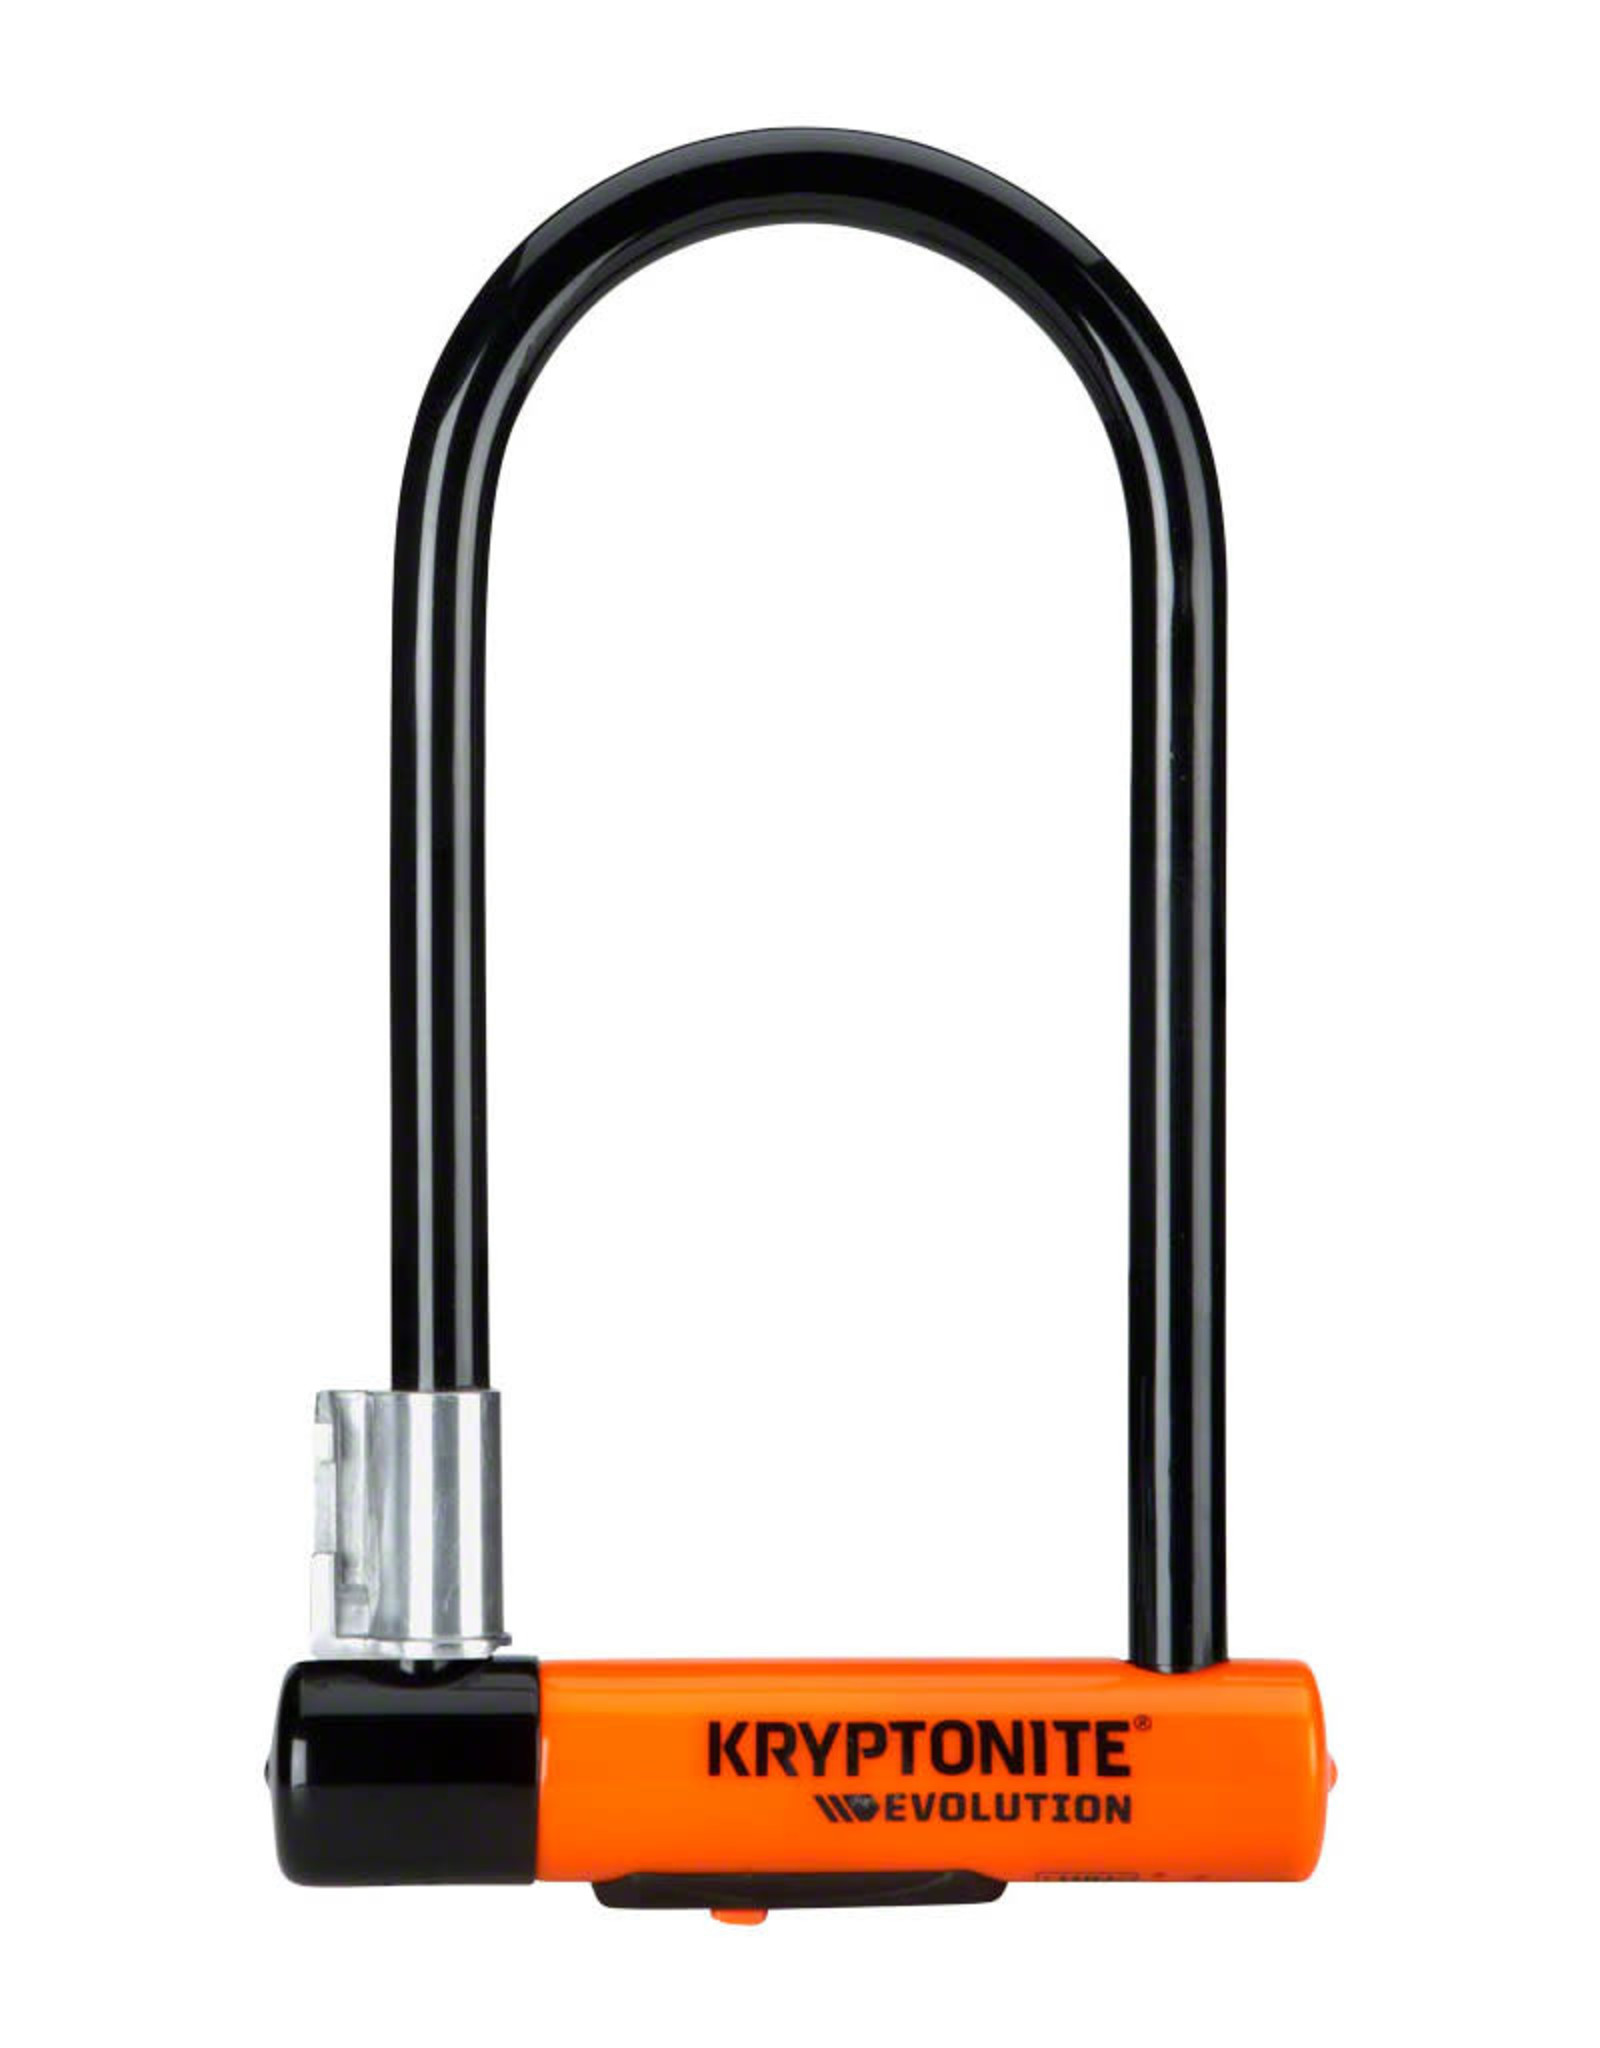 Kryptonite Evolution Series U-Lock - 4 x 9""